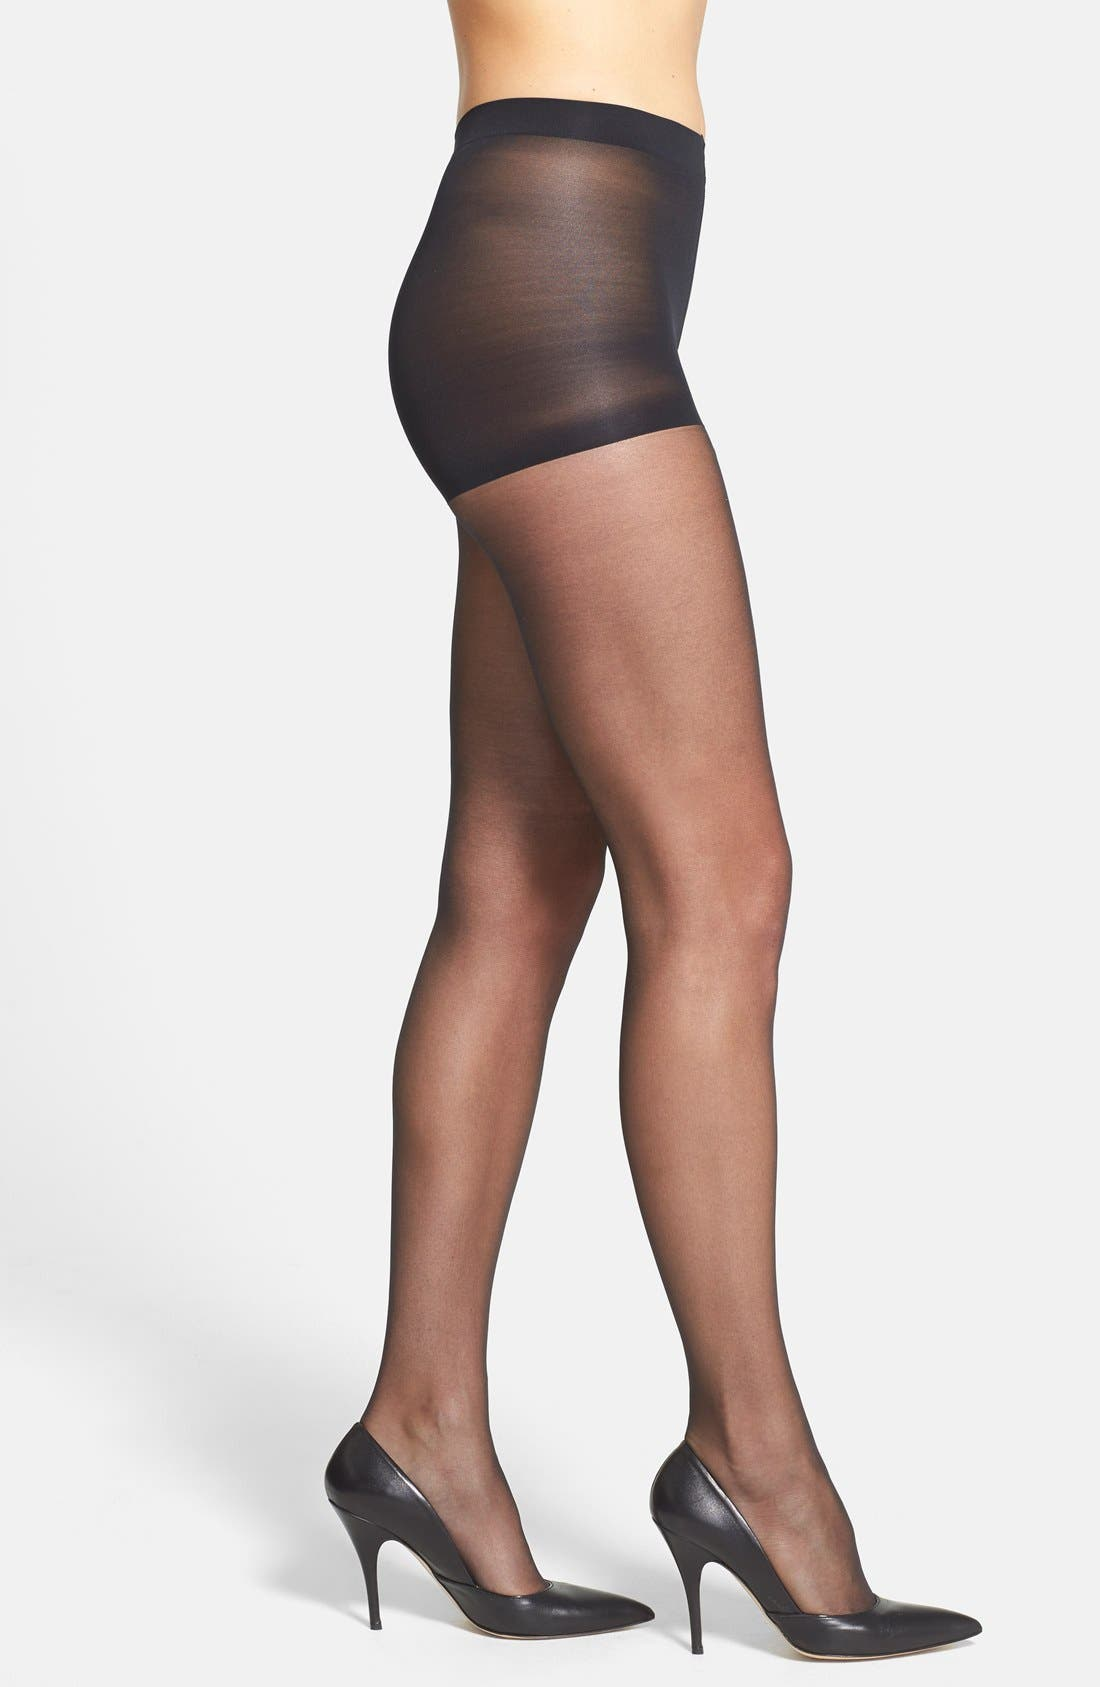 Alternate Image 1 Selected - Calvin Klein 'Ultra Bare - Infinite Sheer' Control Top Pantyhose